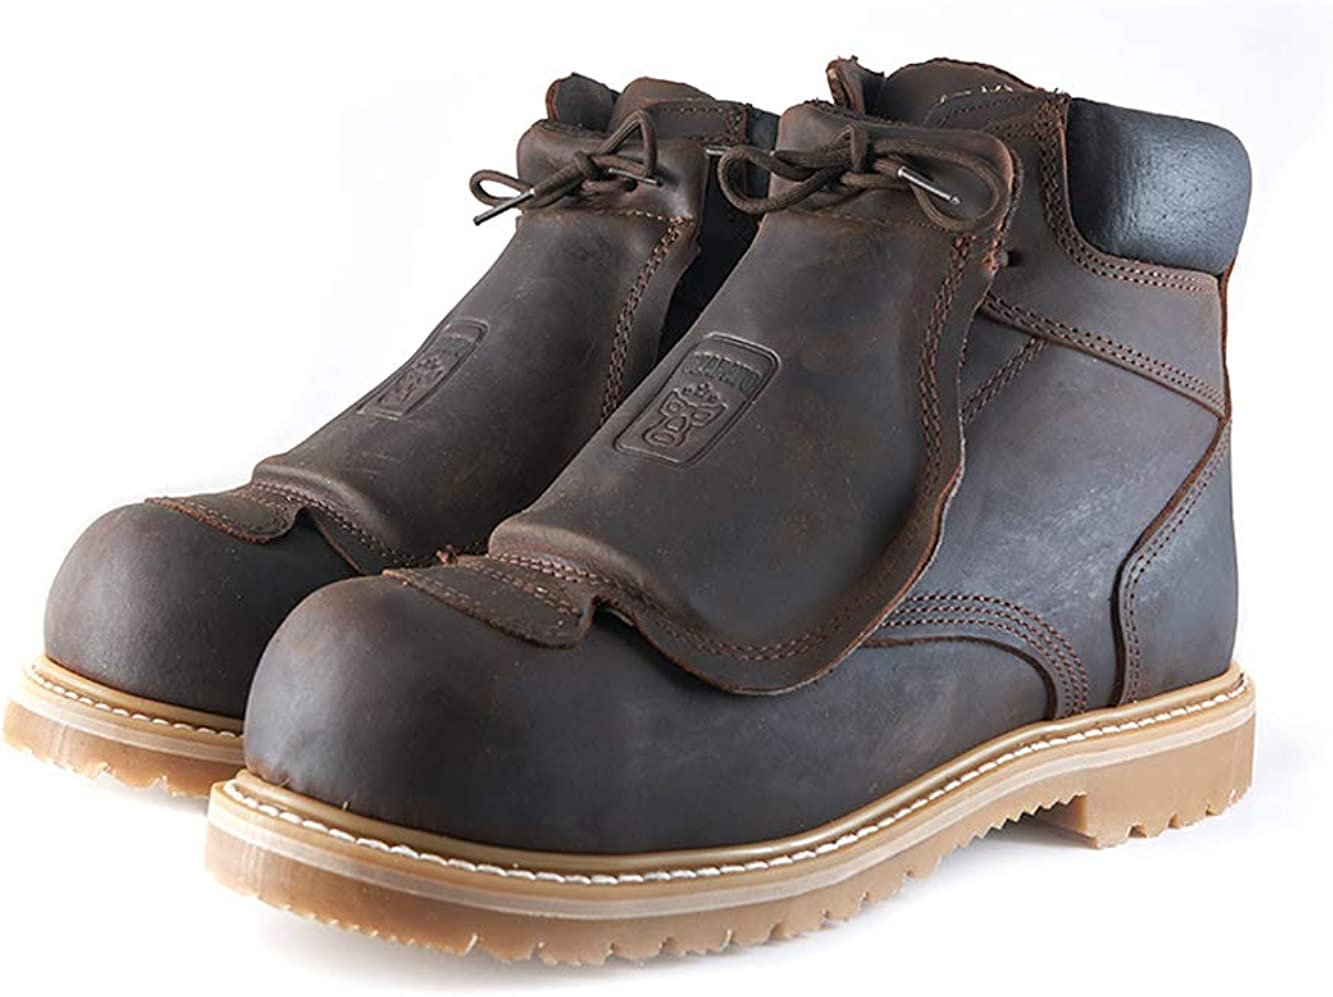 Welt Santos Metatarsal ASTM 2413-18 Premium Leather Work Boots Composite Toe Goodyear Resoleable Sole Kevlar Plate